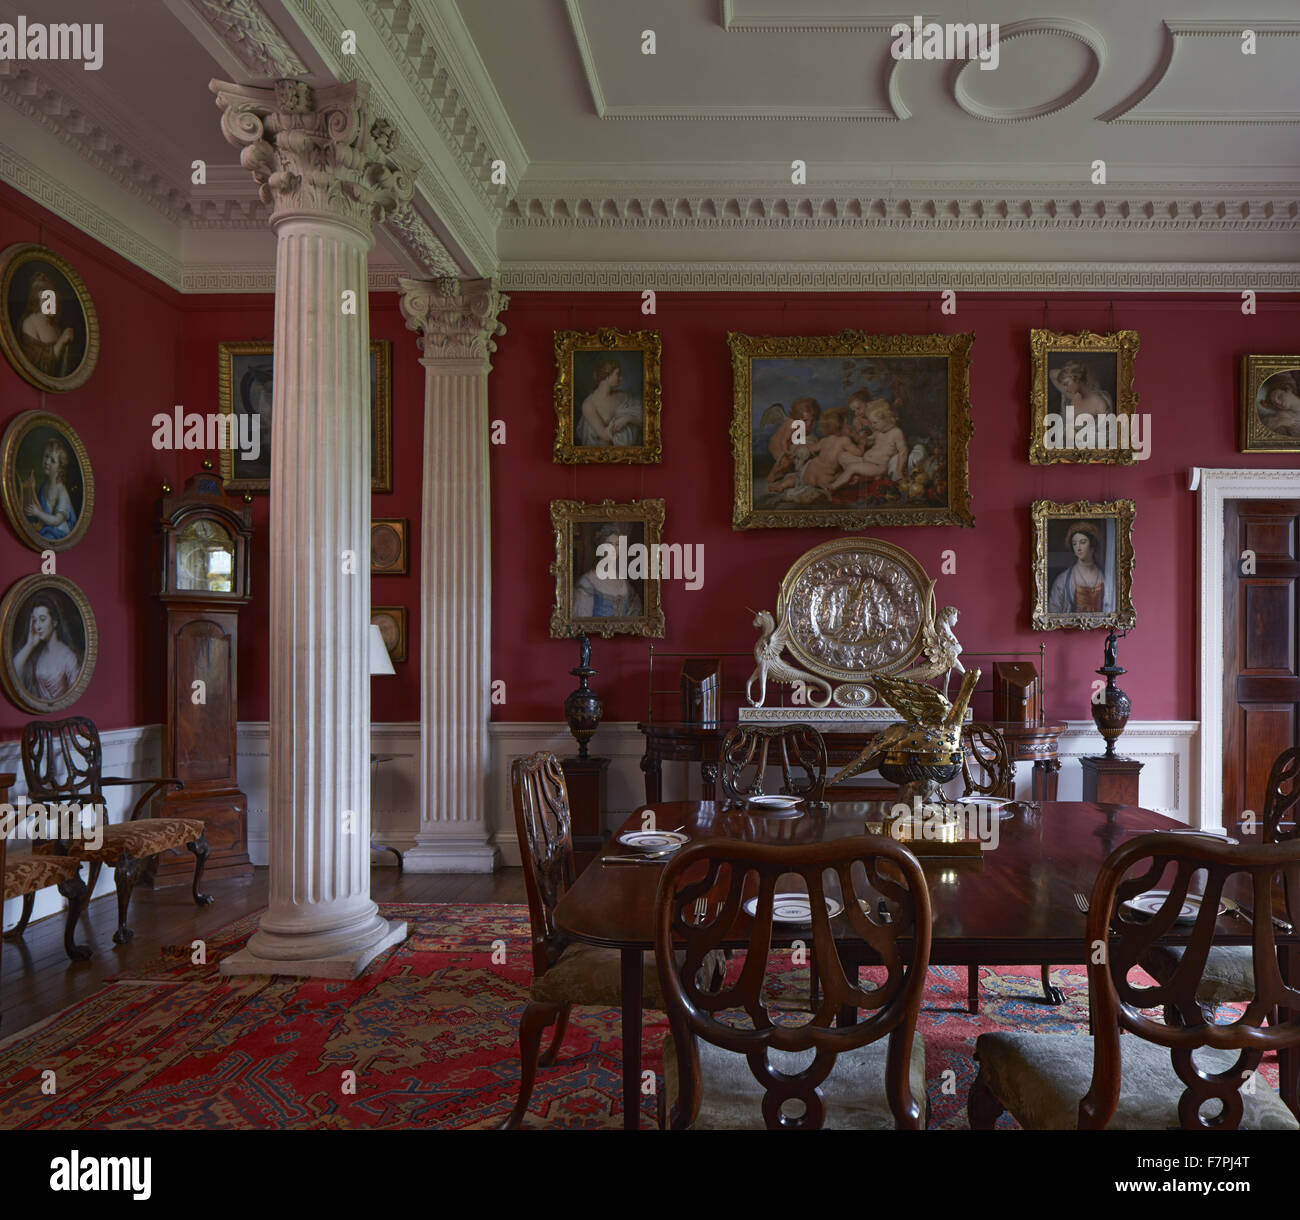 The Little Dining Room At Stourhead, Wiltshire. Stourhead House Contains A  Unique Regency Library, Chippendale Furniture And Inspirational Paintings.